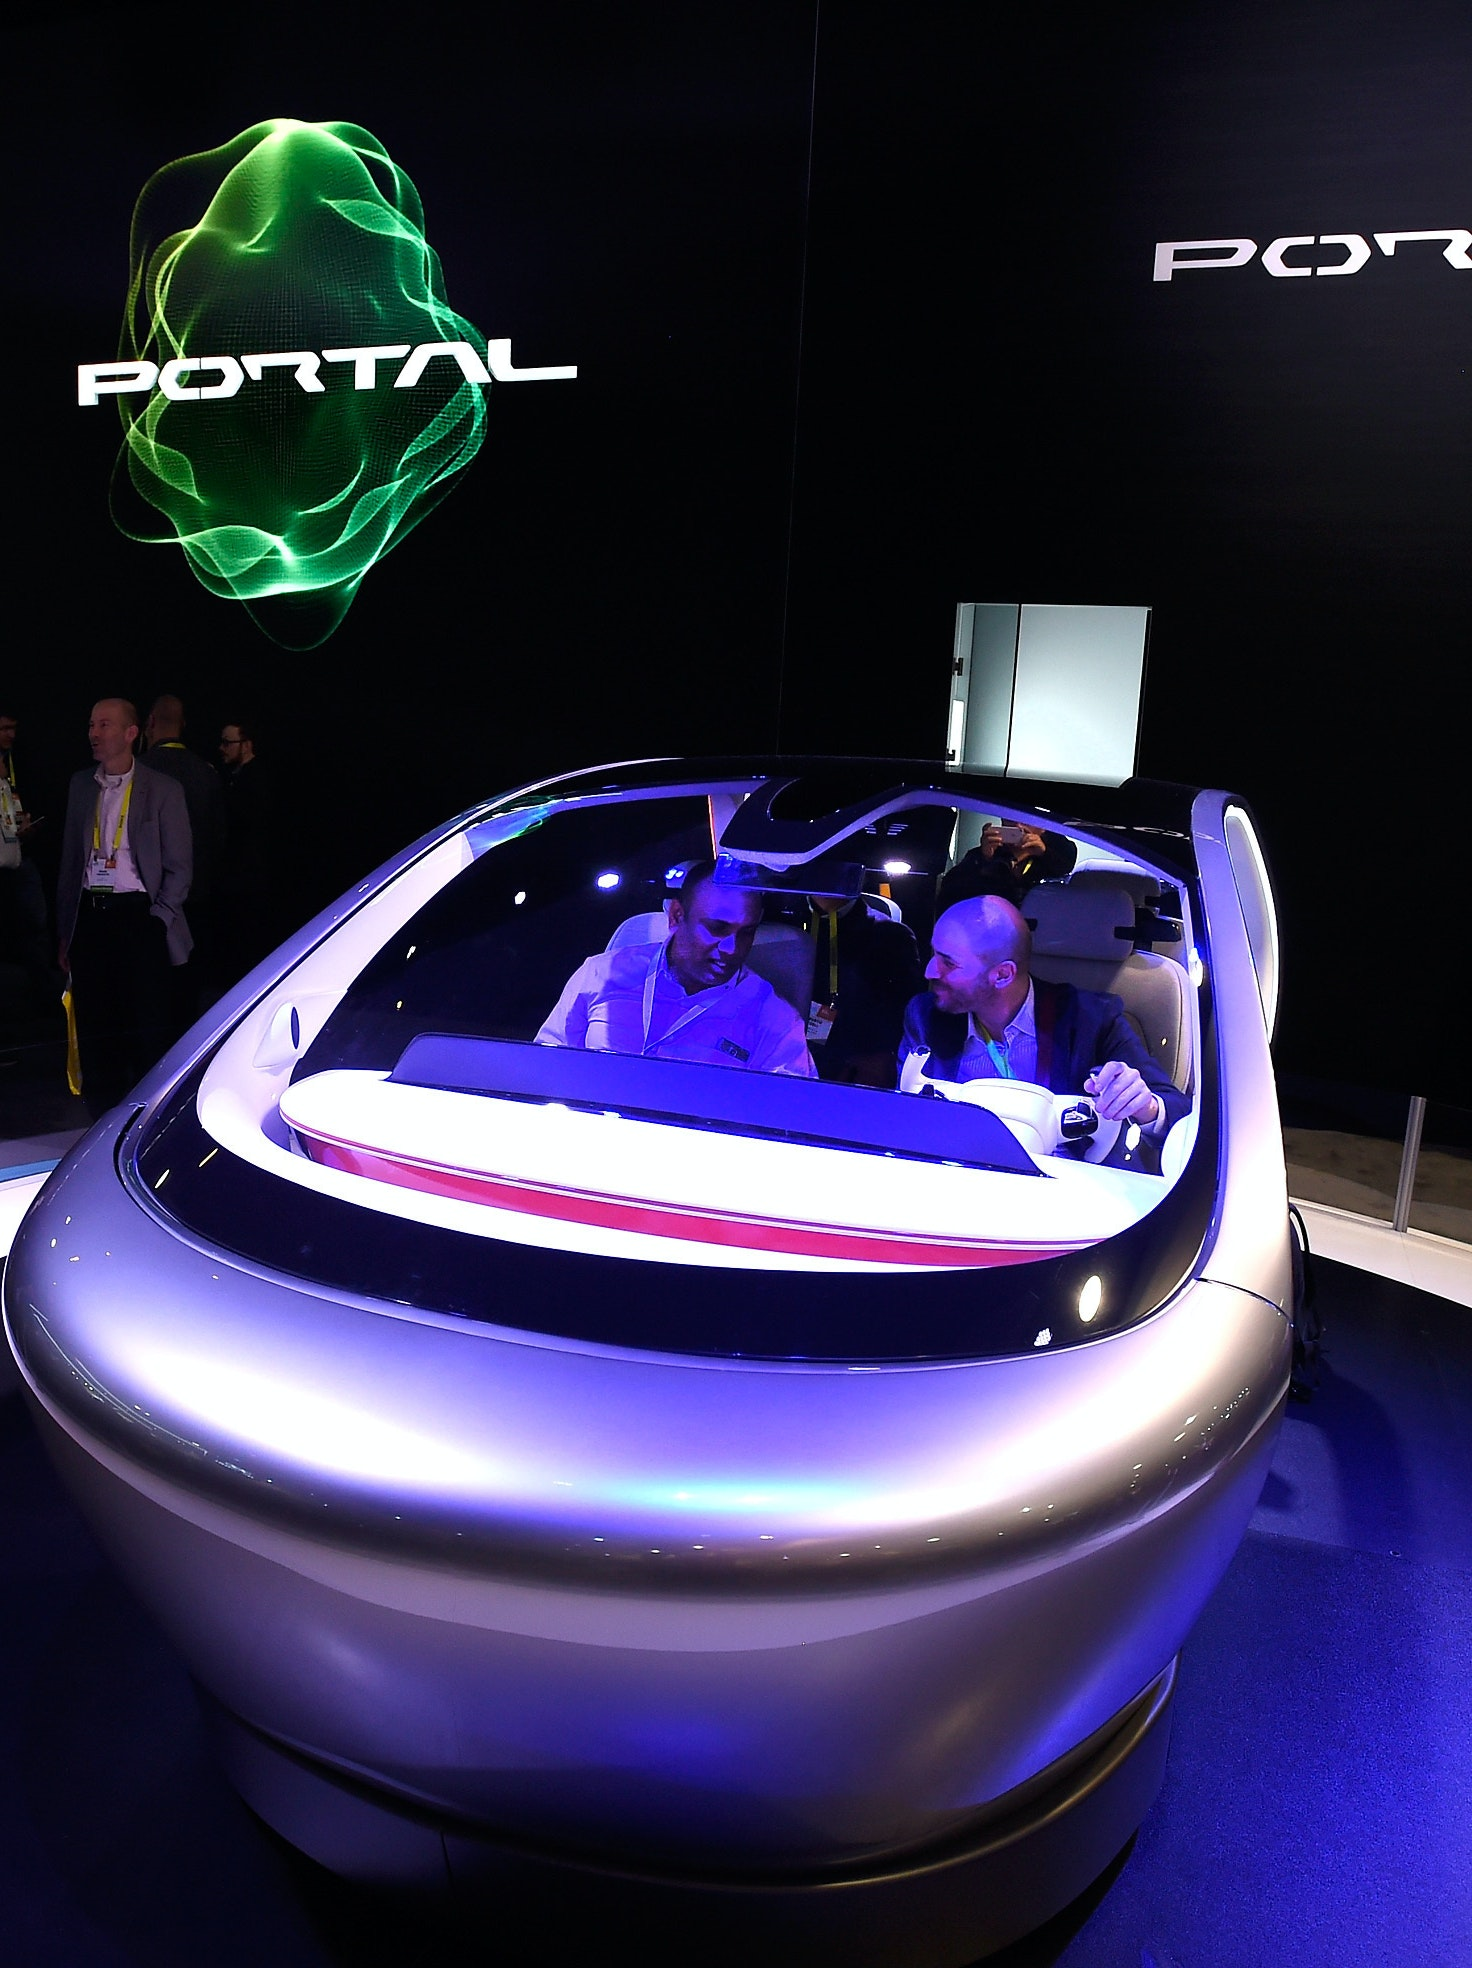 LAS VEGAS, NV - JANUARY 05:  An autonomous self-driving concept vehicle called Portal is diplayed at the Chrysler booth at CES 2017 at the Las Vegas Convention Center on January 5, 2017 in Las Vegas, Nevada. CES, the world's largest annual consumer technology trade show, runs through January 8 and features 3,800 exhibitors showing off their latest products and services to more than 165,000 attendees.  (Photo by David Becker/Getty Images)